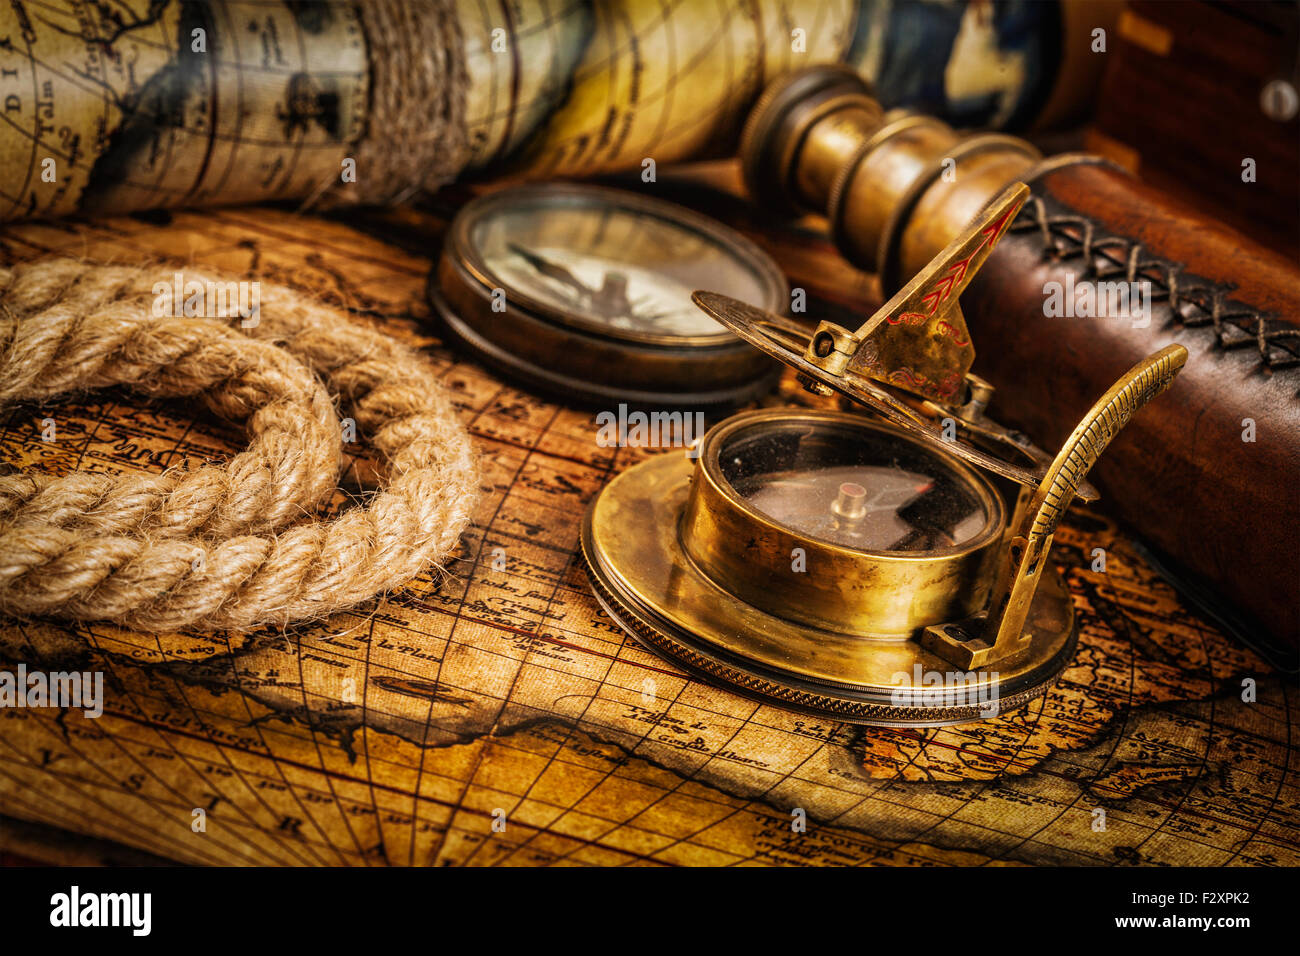 Old vintage compass on ancient map - Stock Image